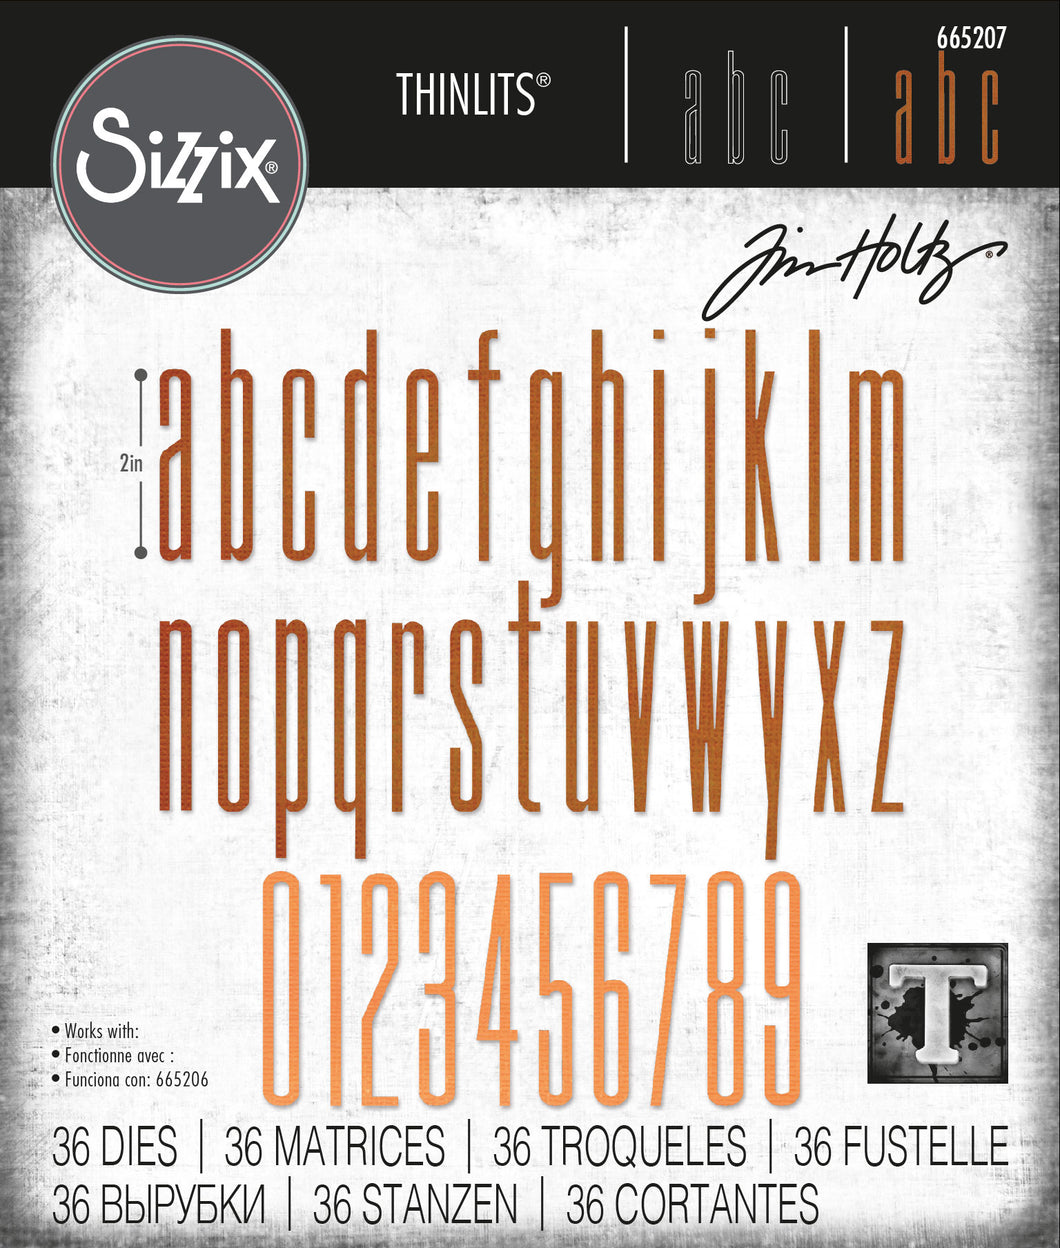 Sizzix Thinlits Die Set 36PK - Alphanumeric Stretch Lower & Numbers by Tim Holtz (665207)